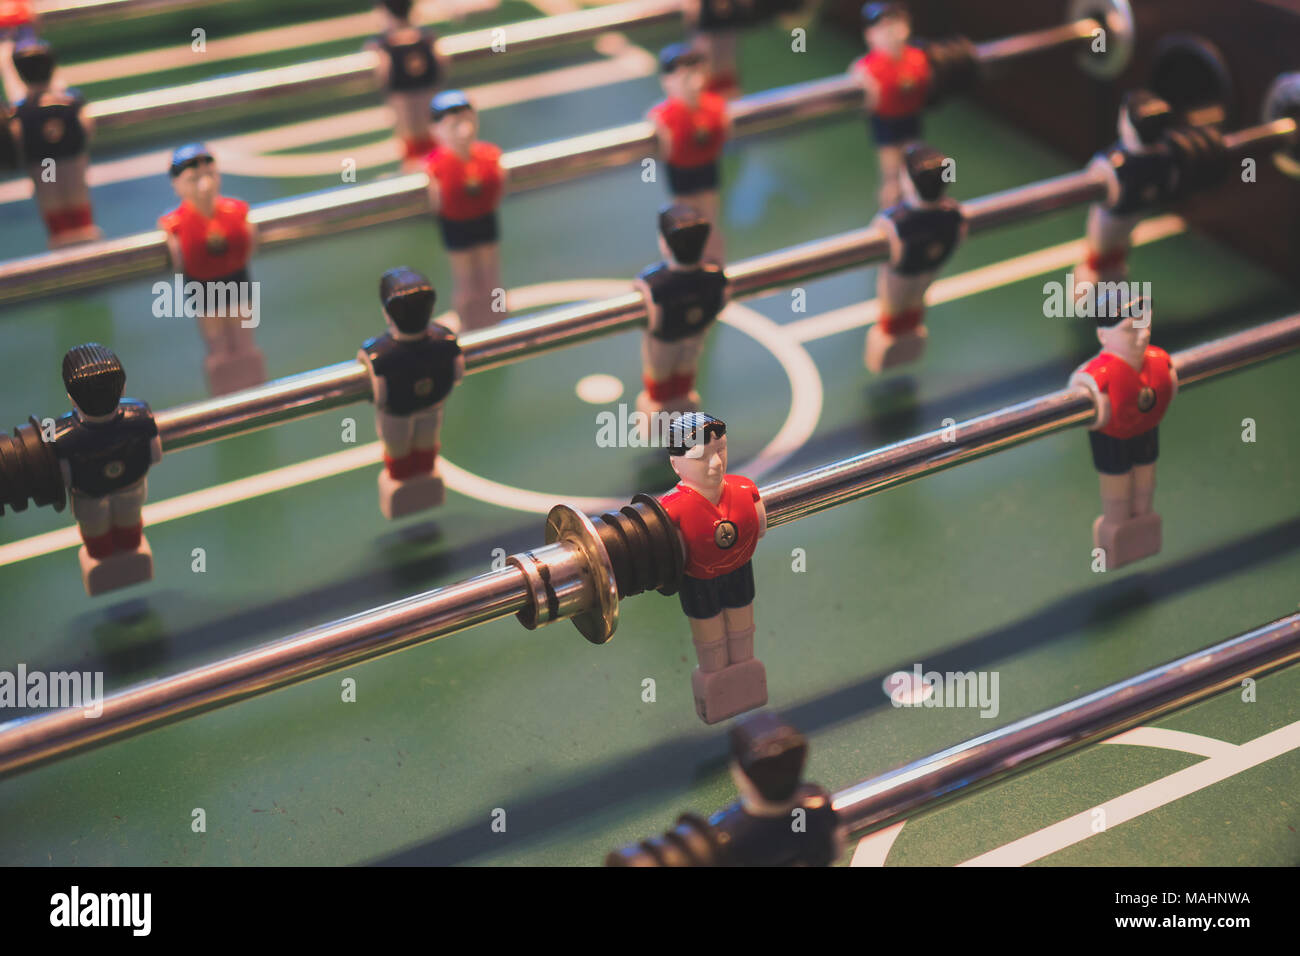 Table football game with red and blue players. - Stock Image